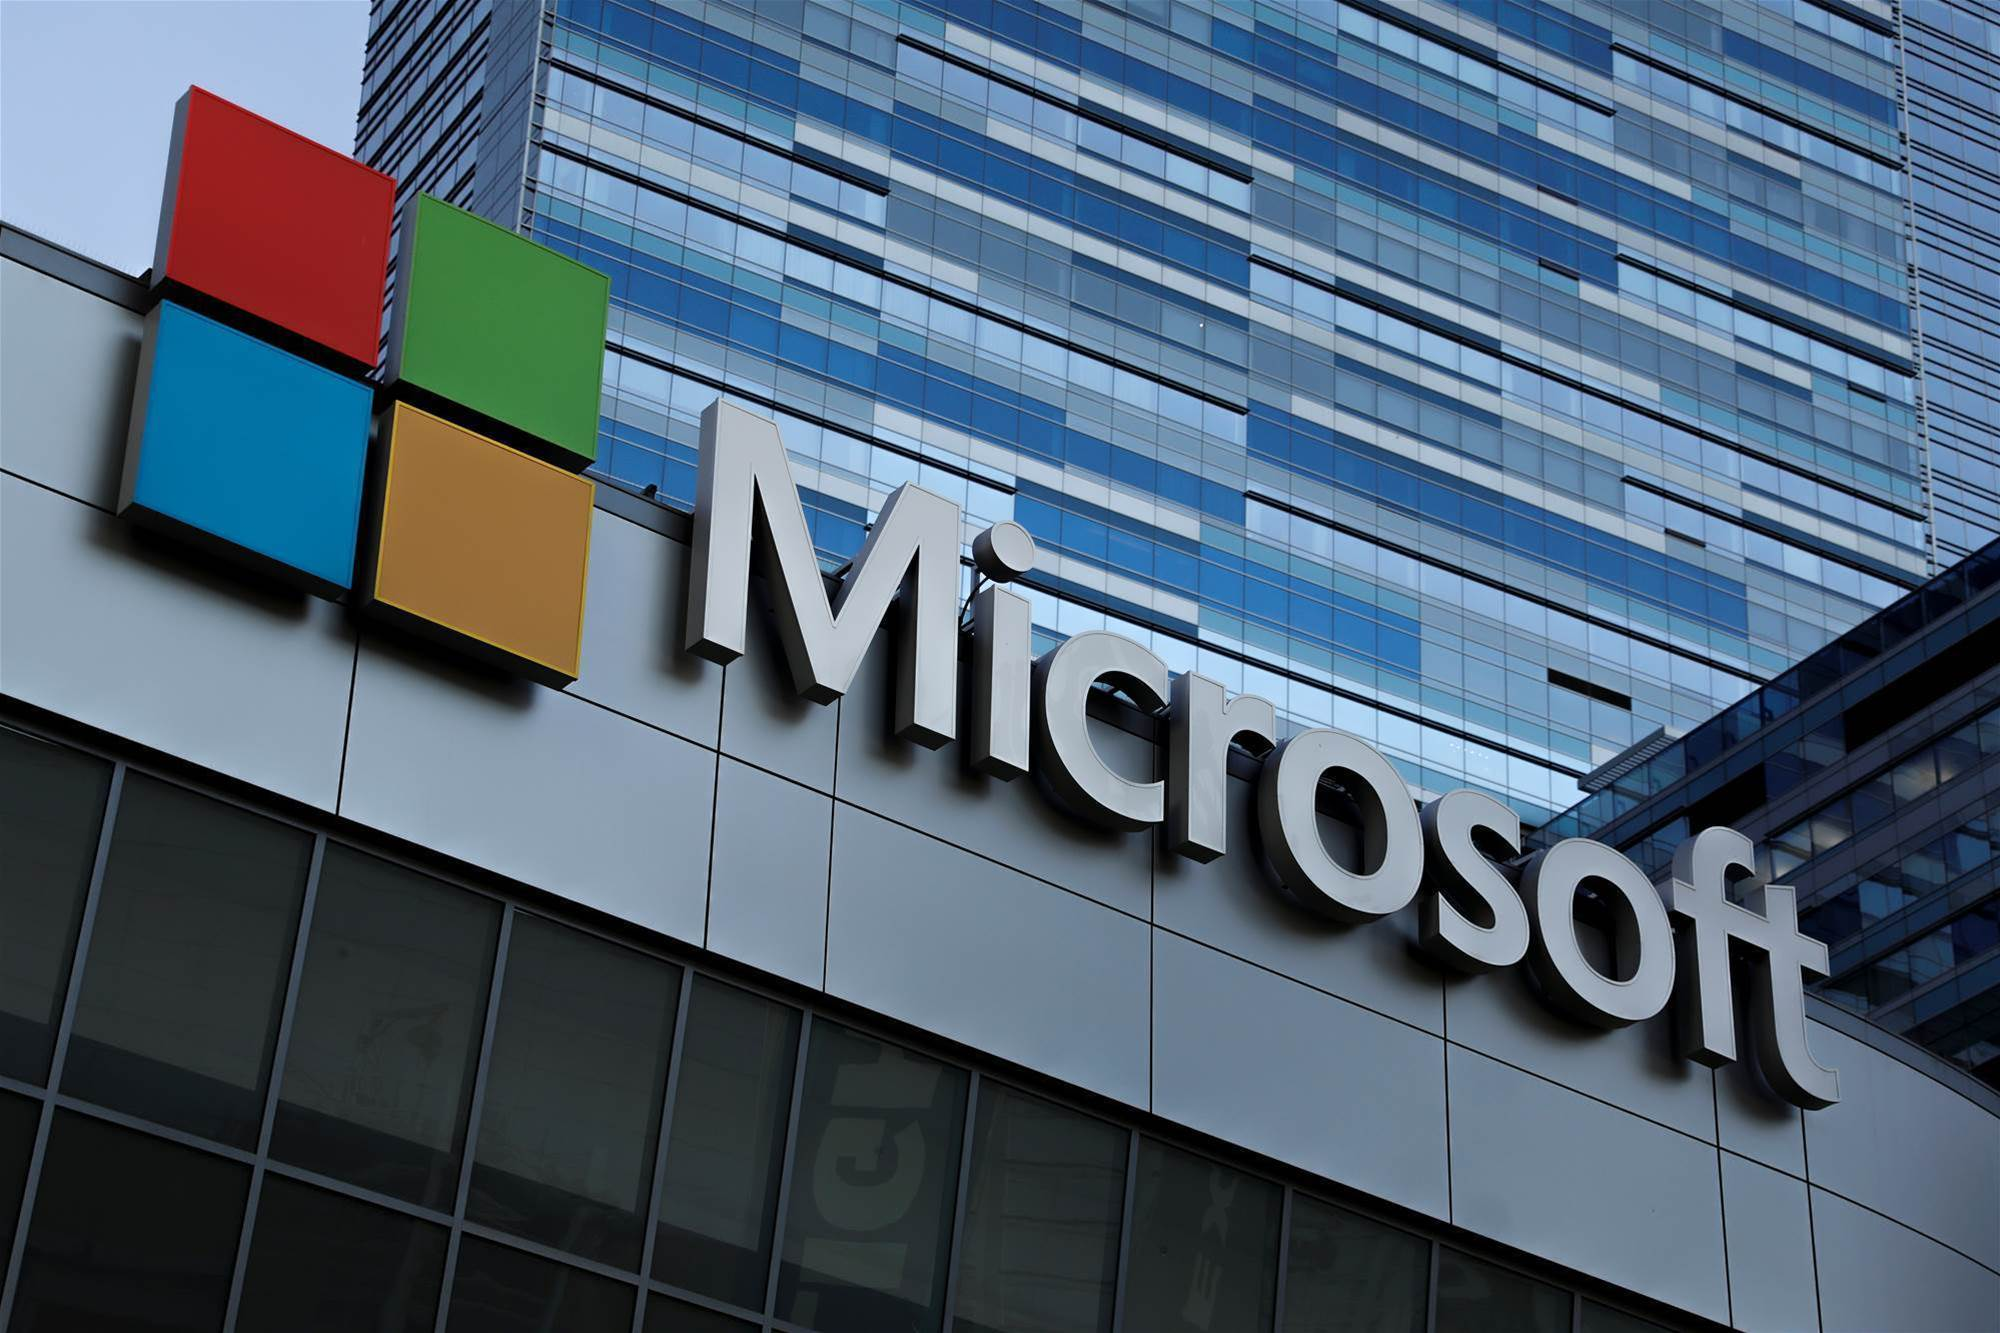 Microsoft's Azure growth slows, but results meet expectations